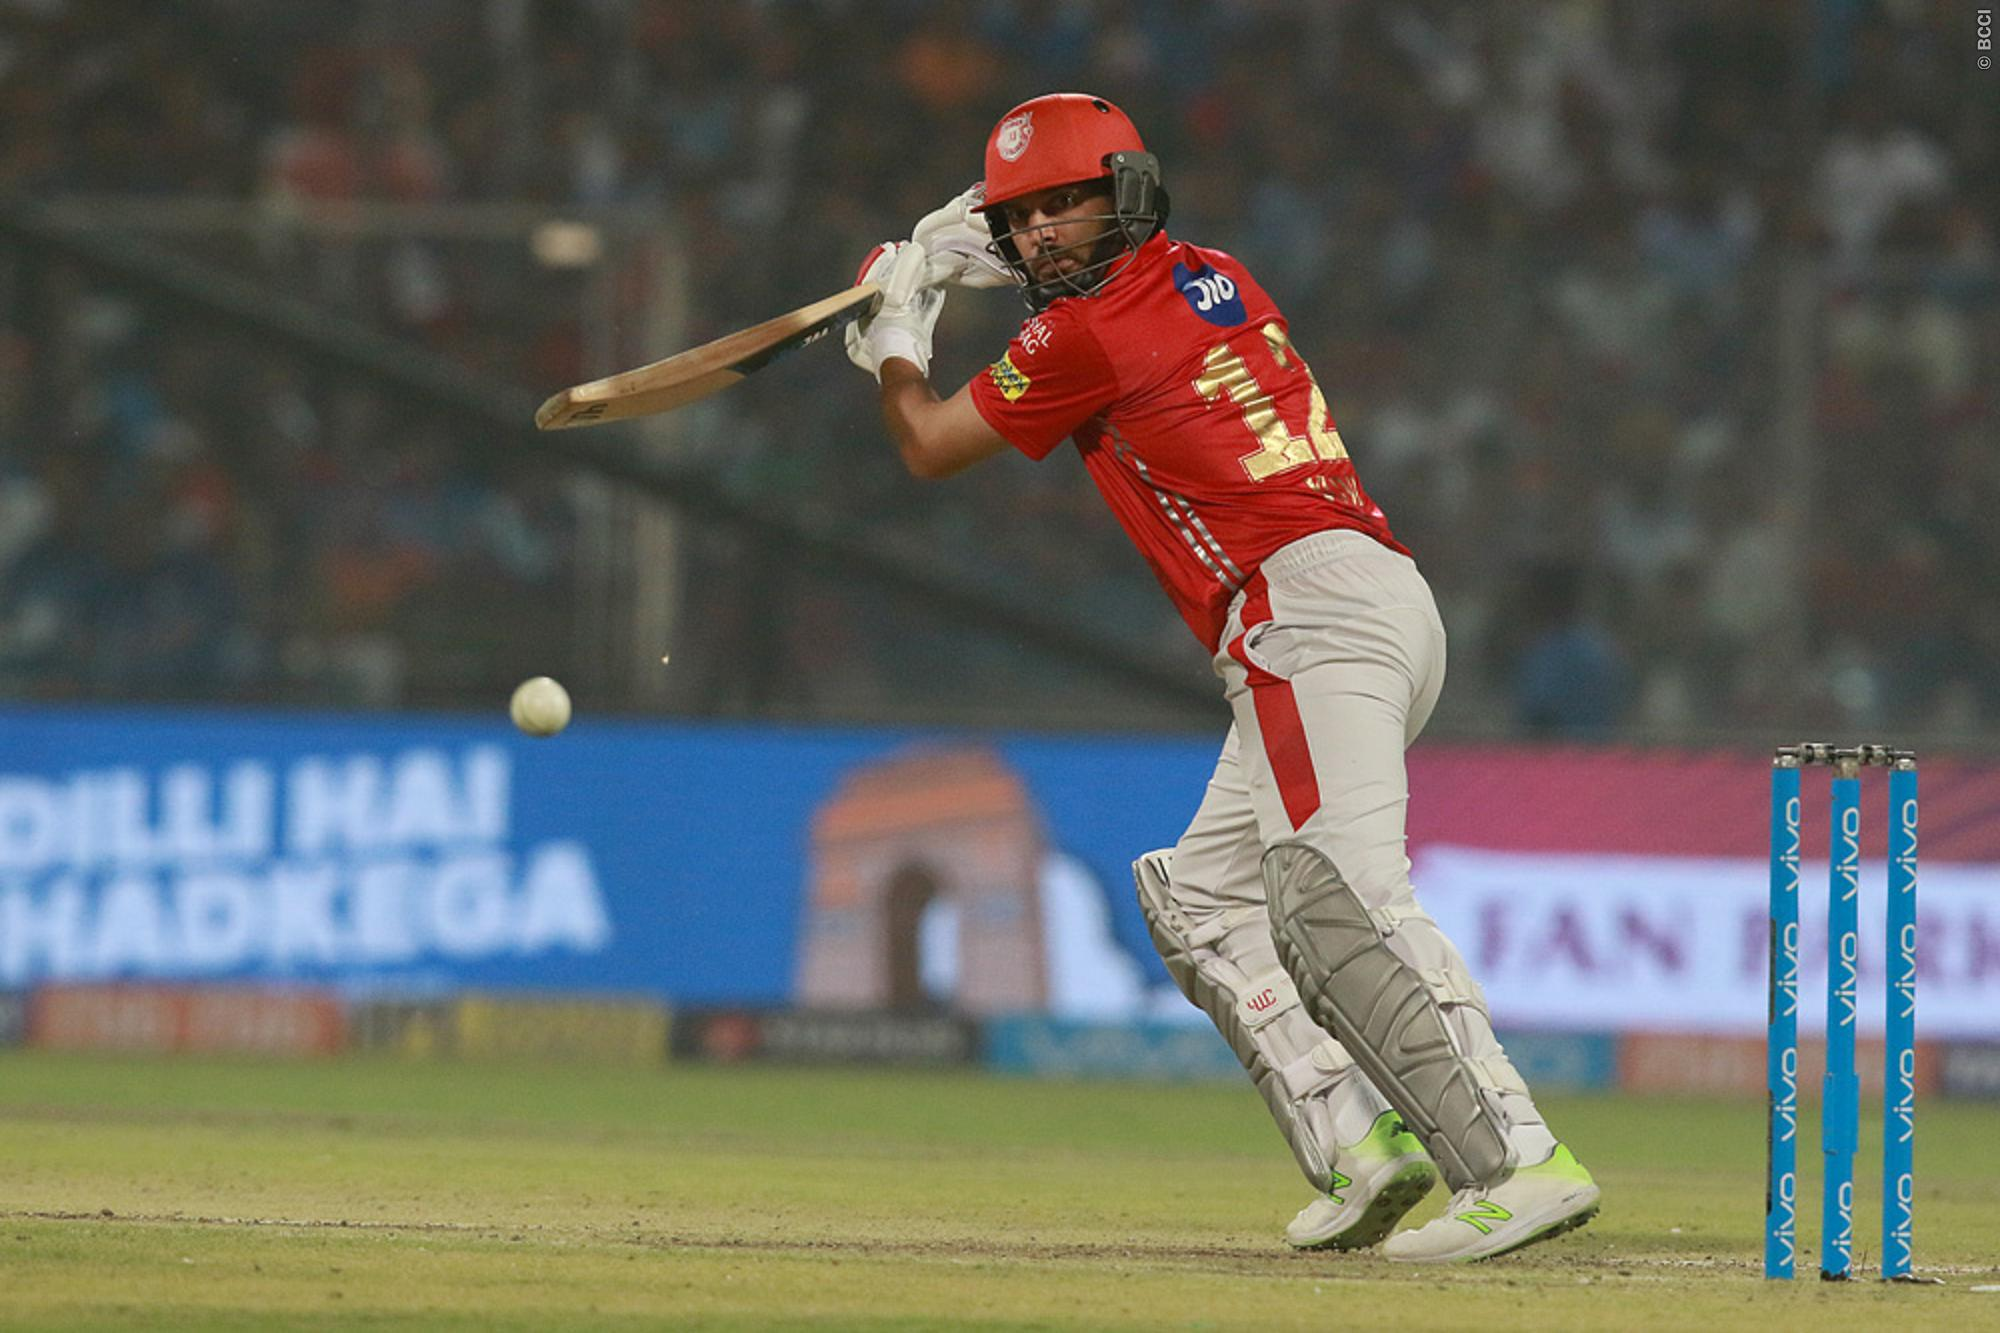 IPL 2019: Players who could be playing their last season 4